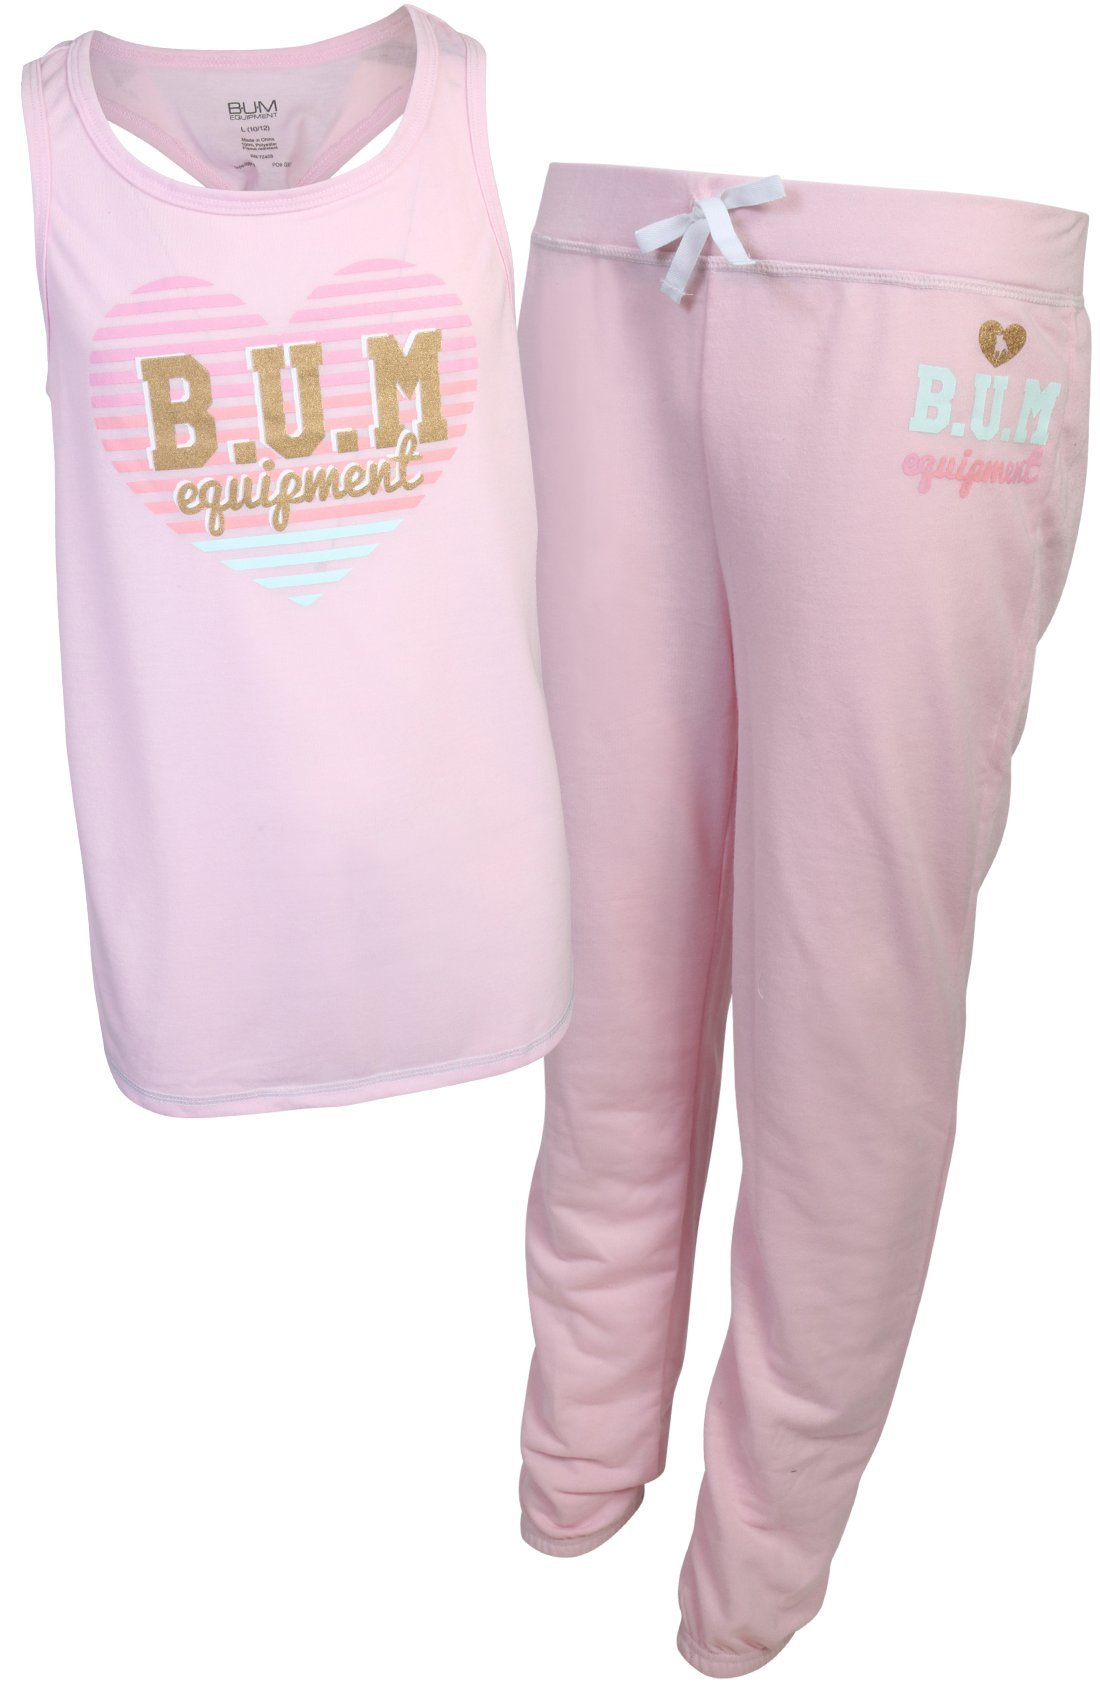 B.U.M. Equipment Girl's 2-Piece French Terry Jogger Sweatpant Pajama Set, Light Pink, X-Large/14-16'